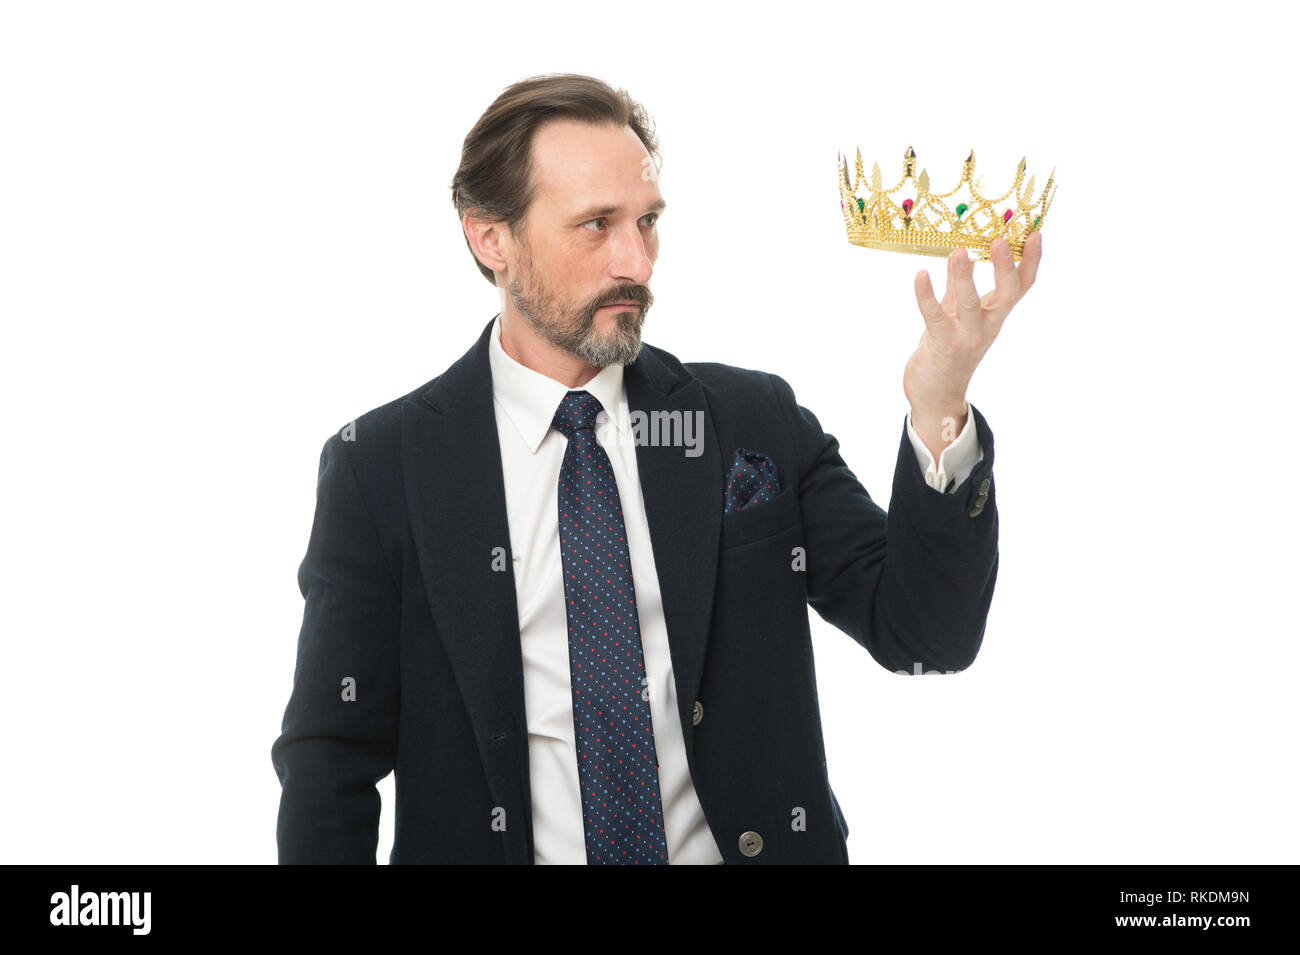 Direct line to throne. Enormous privilege. Become king ceremony. King attribute. Become next king. Monarchy family traditions. Man nature bearded guy in suit hold golden crown symbol of monarchy. - Stock Image